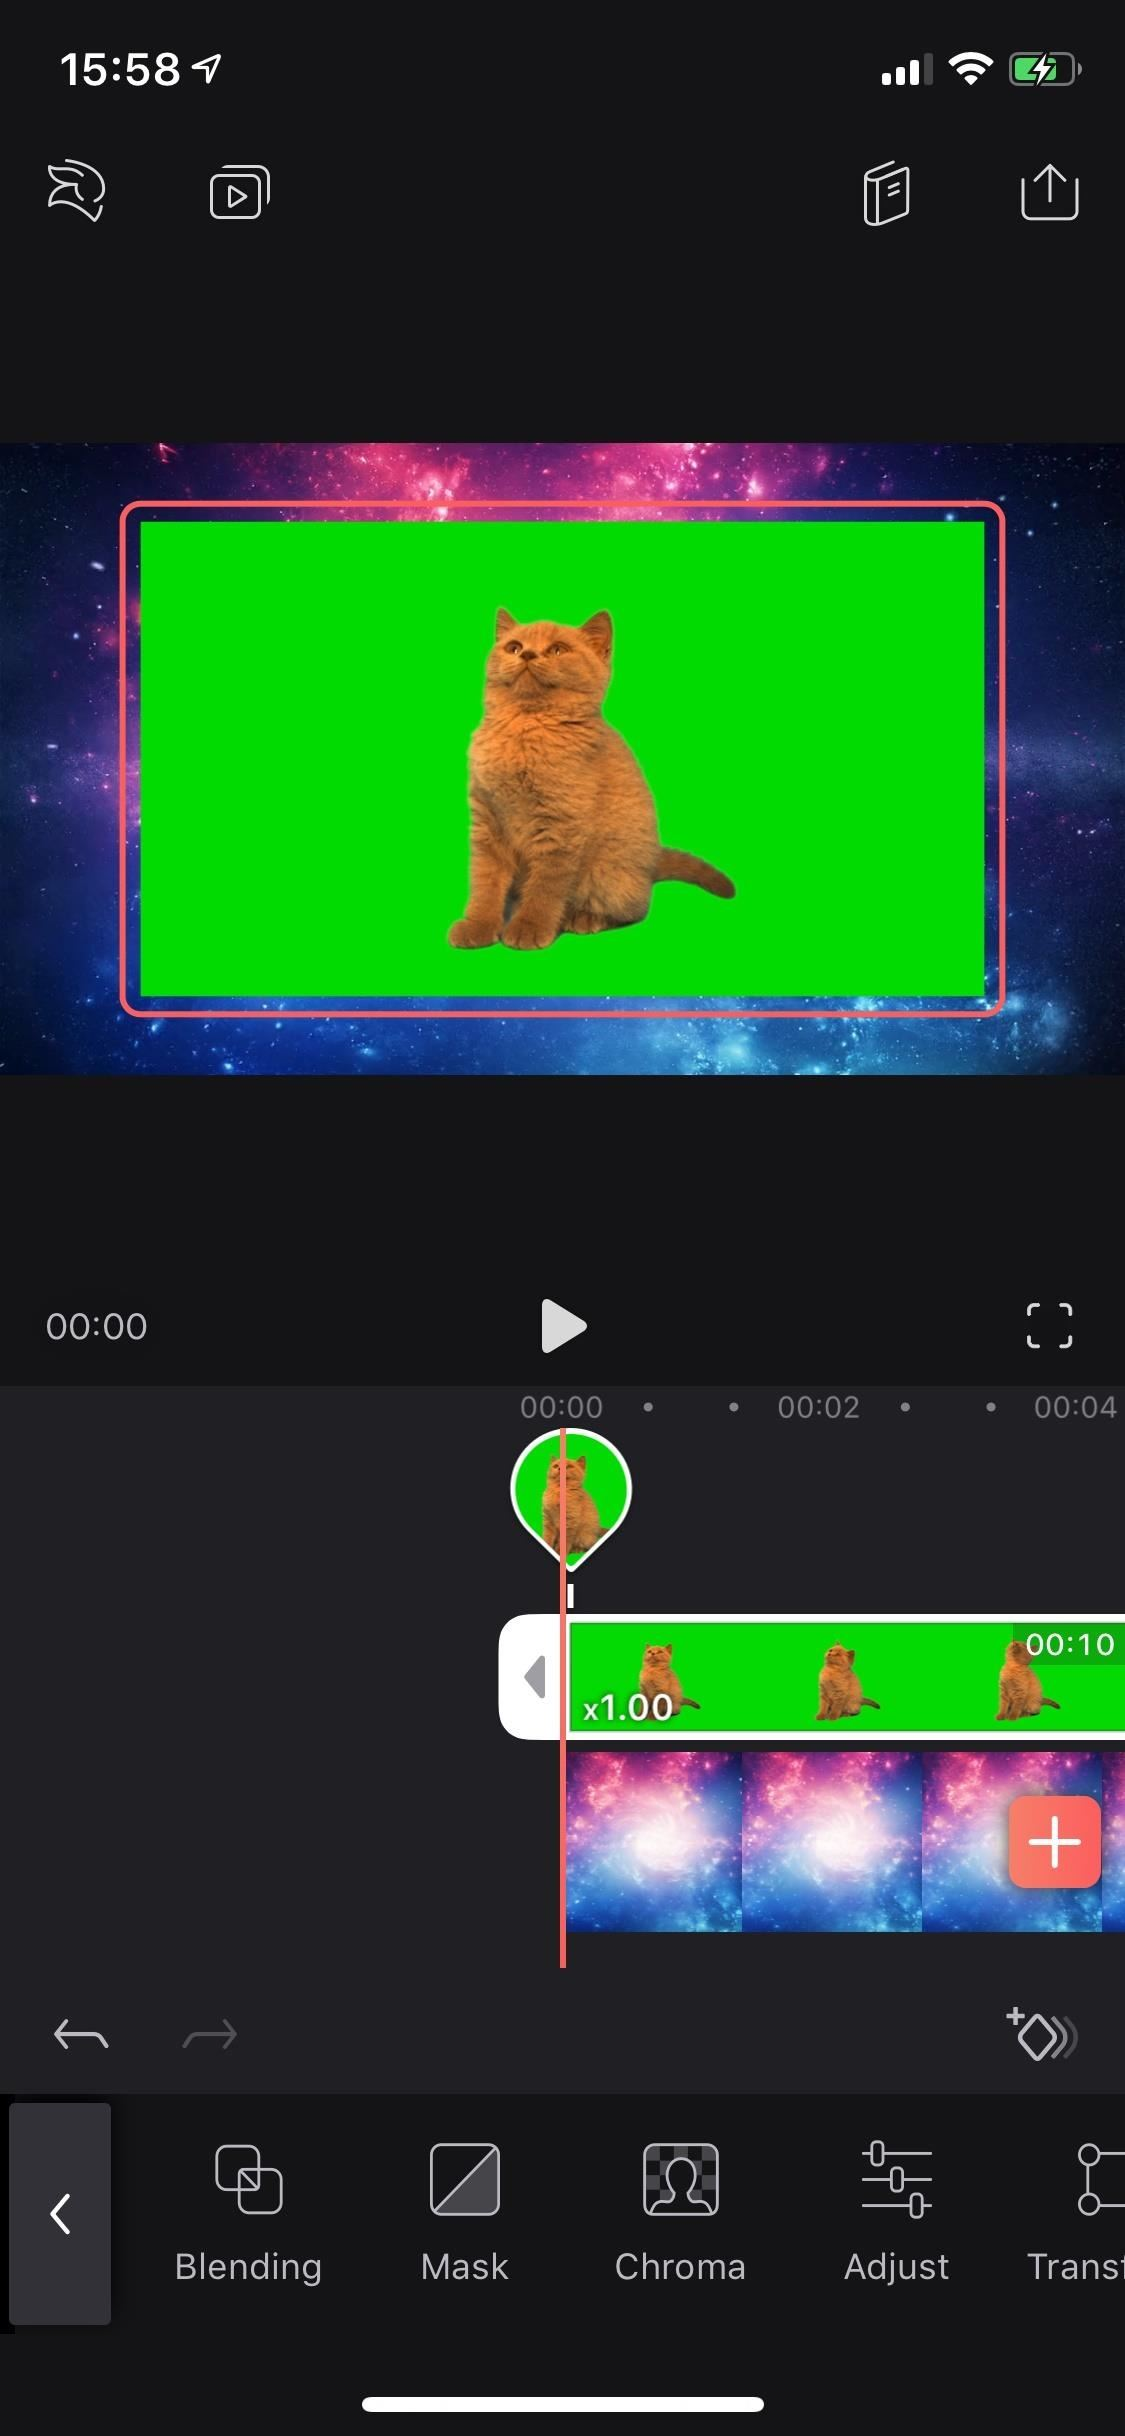 Replace Video Backgrounds with Green Screen Scream Key Tool in Enlight Video Leap for iPhone